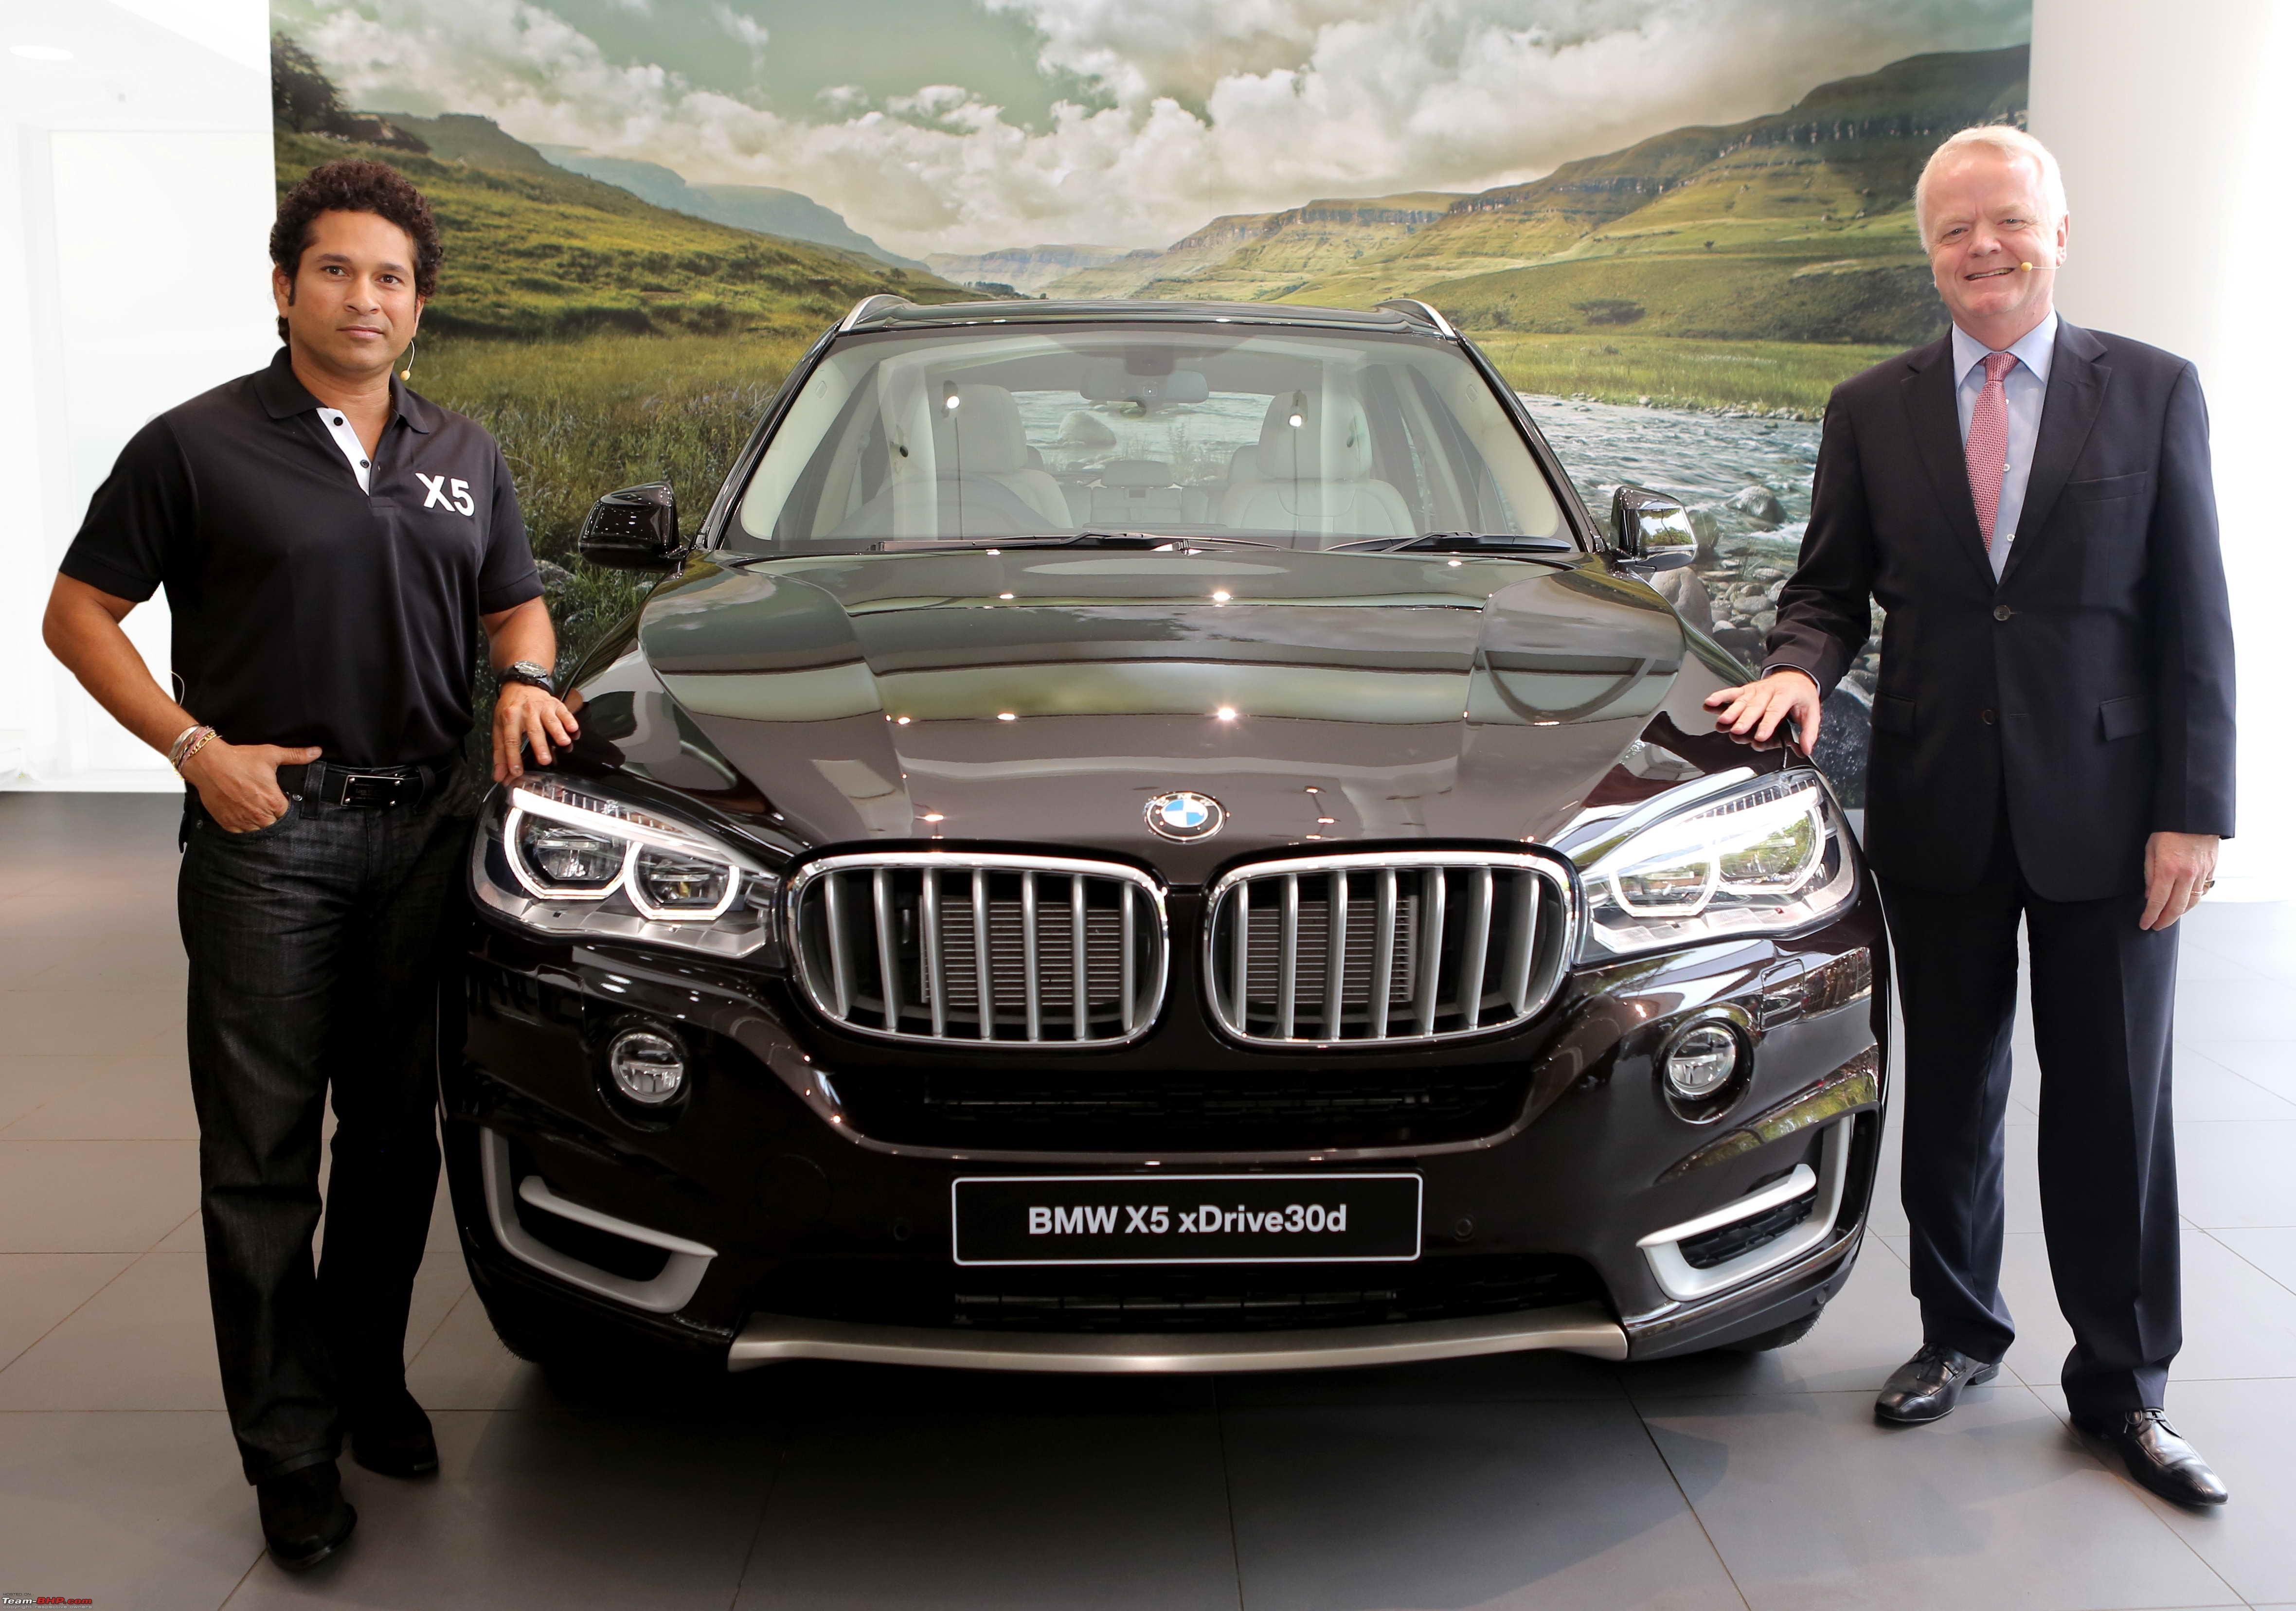 Latest Third Generation Bmw X5 Launched In India At Rs 70 9 Lakh Free Download